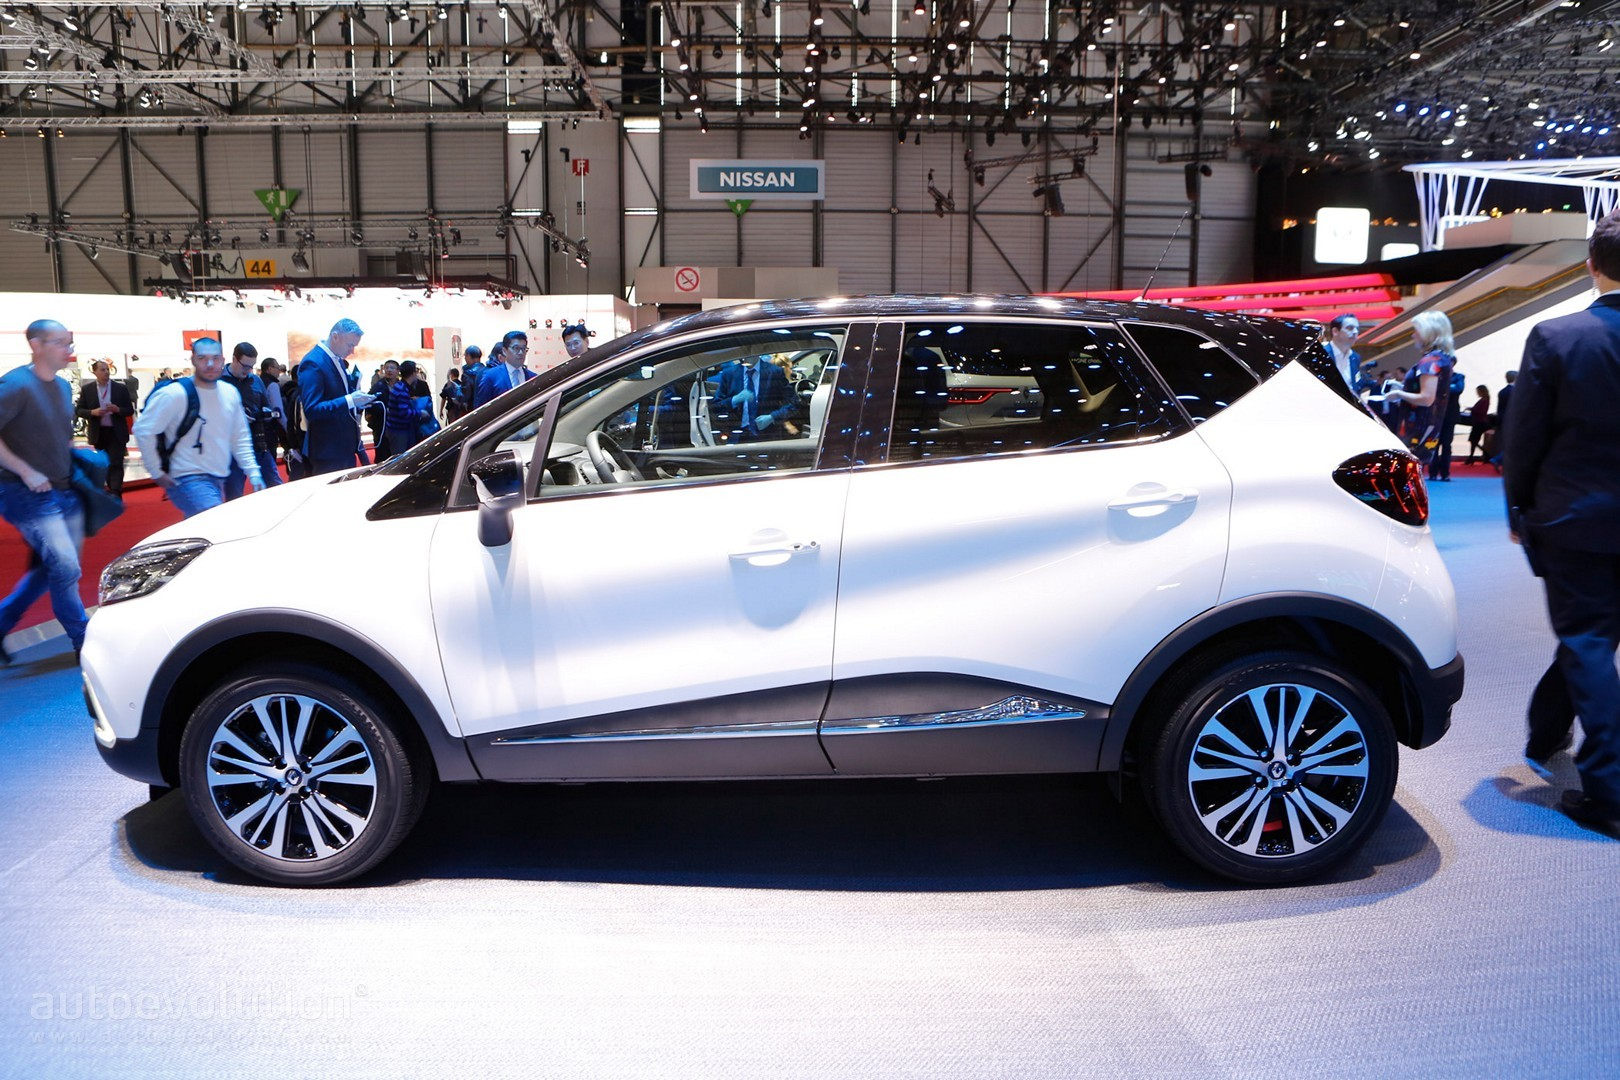 2017 Renault Captur Shows LEDs at Geneva Motor Show - autoevolution